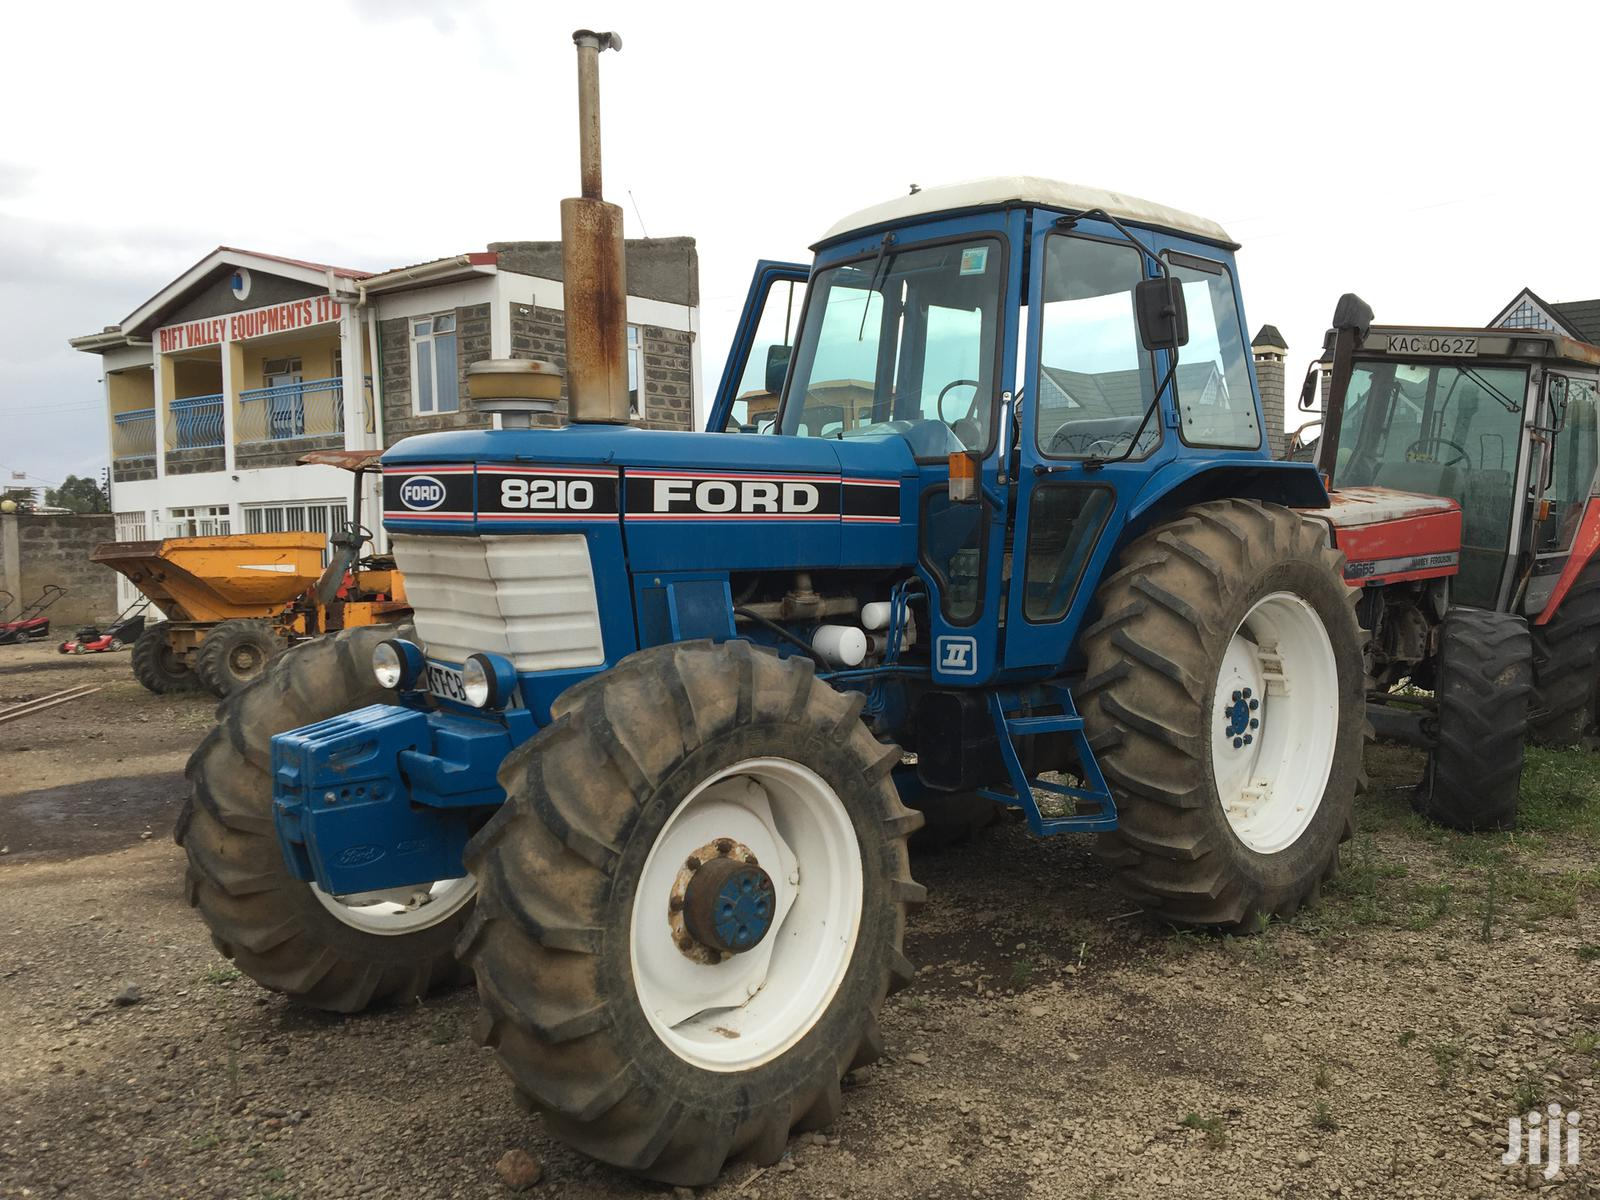 Archive: Ford 8210 Tractor